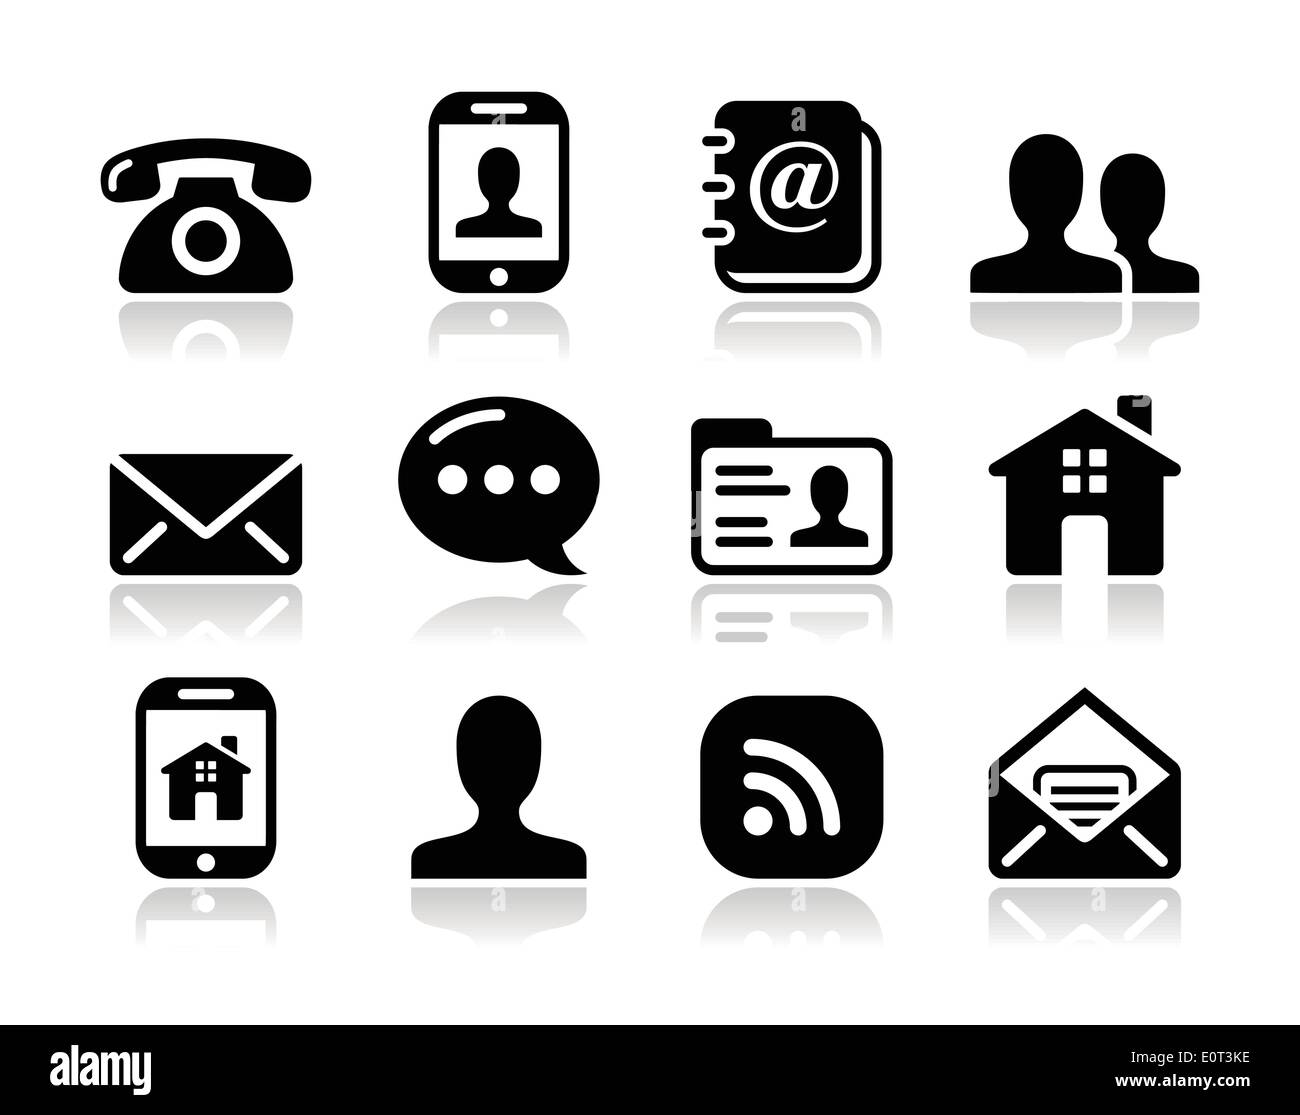 Contact black icons set - mobile, user, email, smartphone - Stock Image